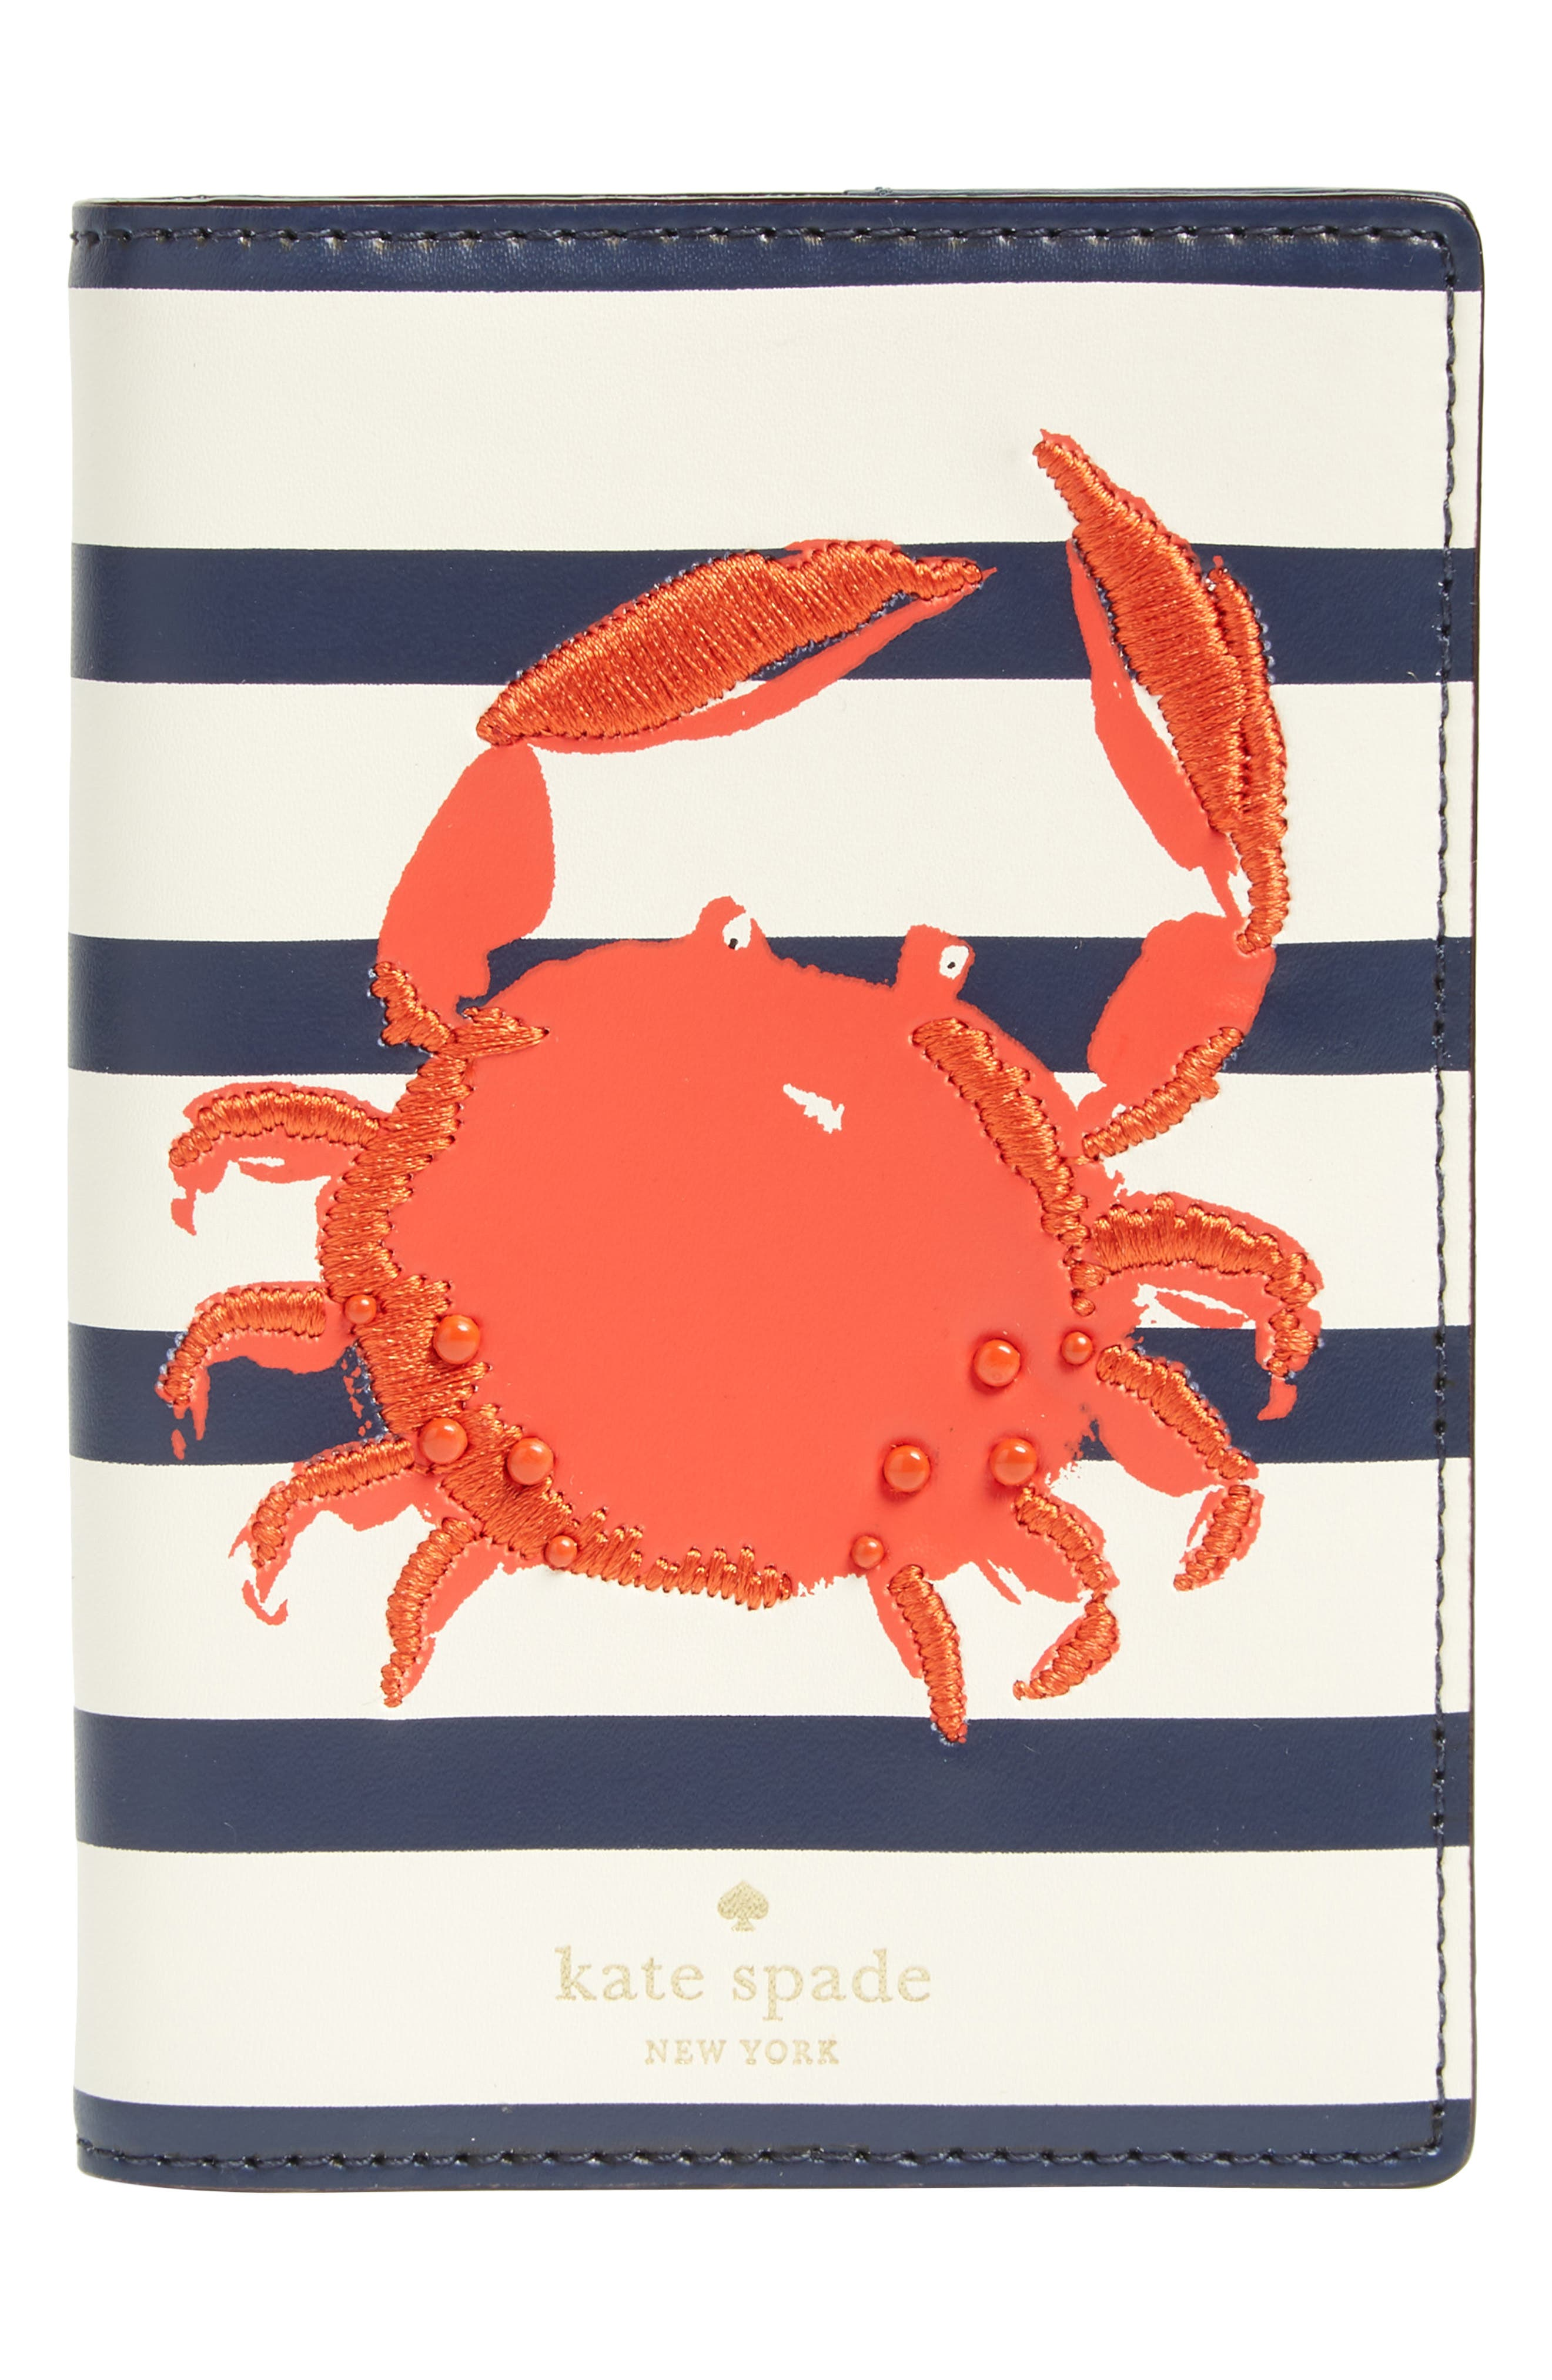 kate spade new york shore thing - crab leather passport holder